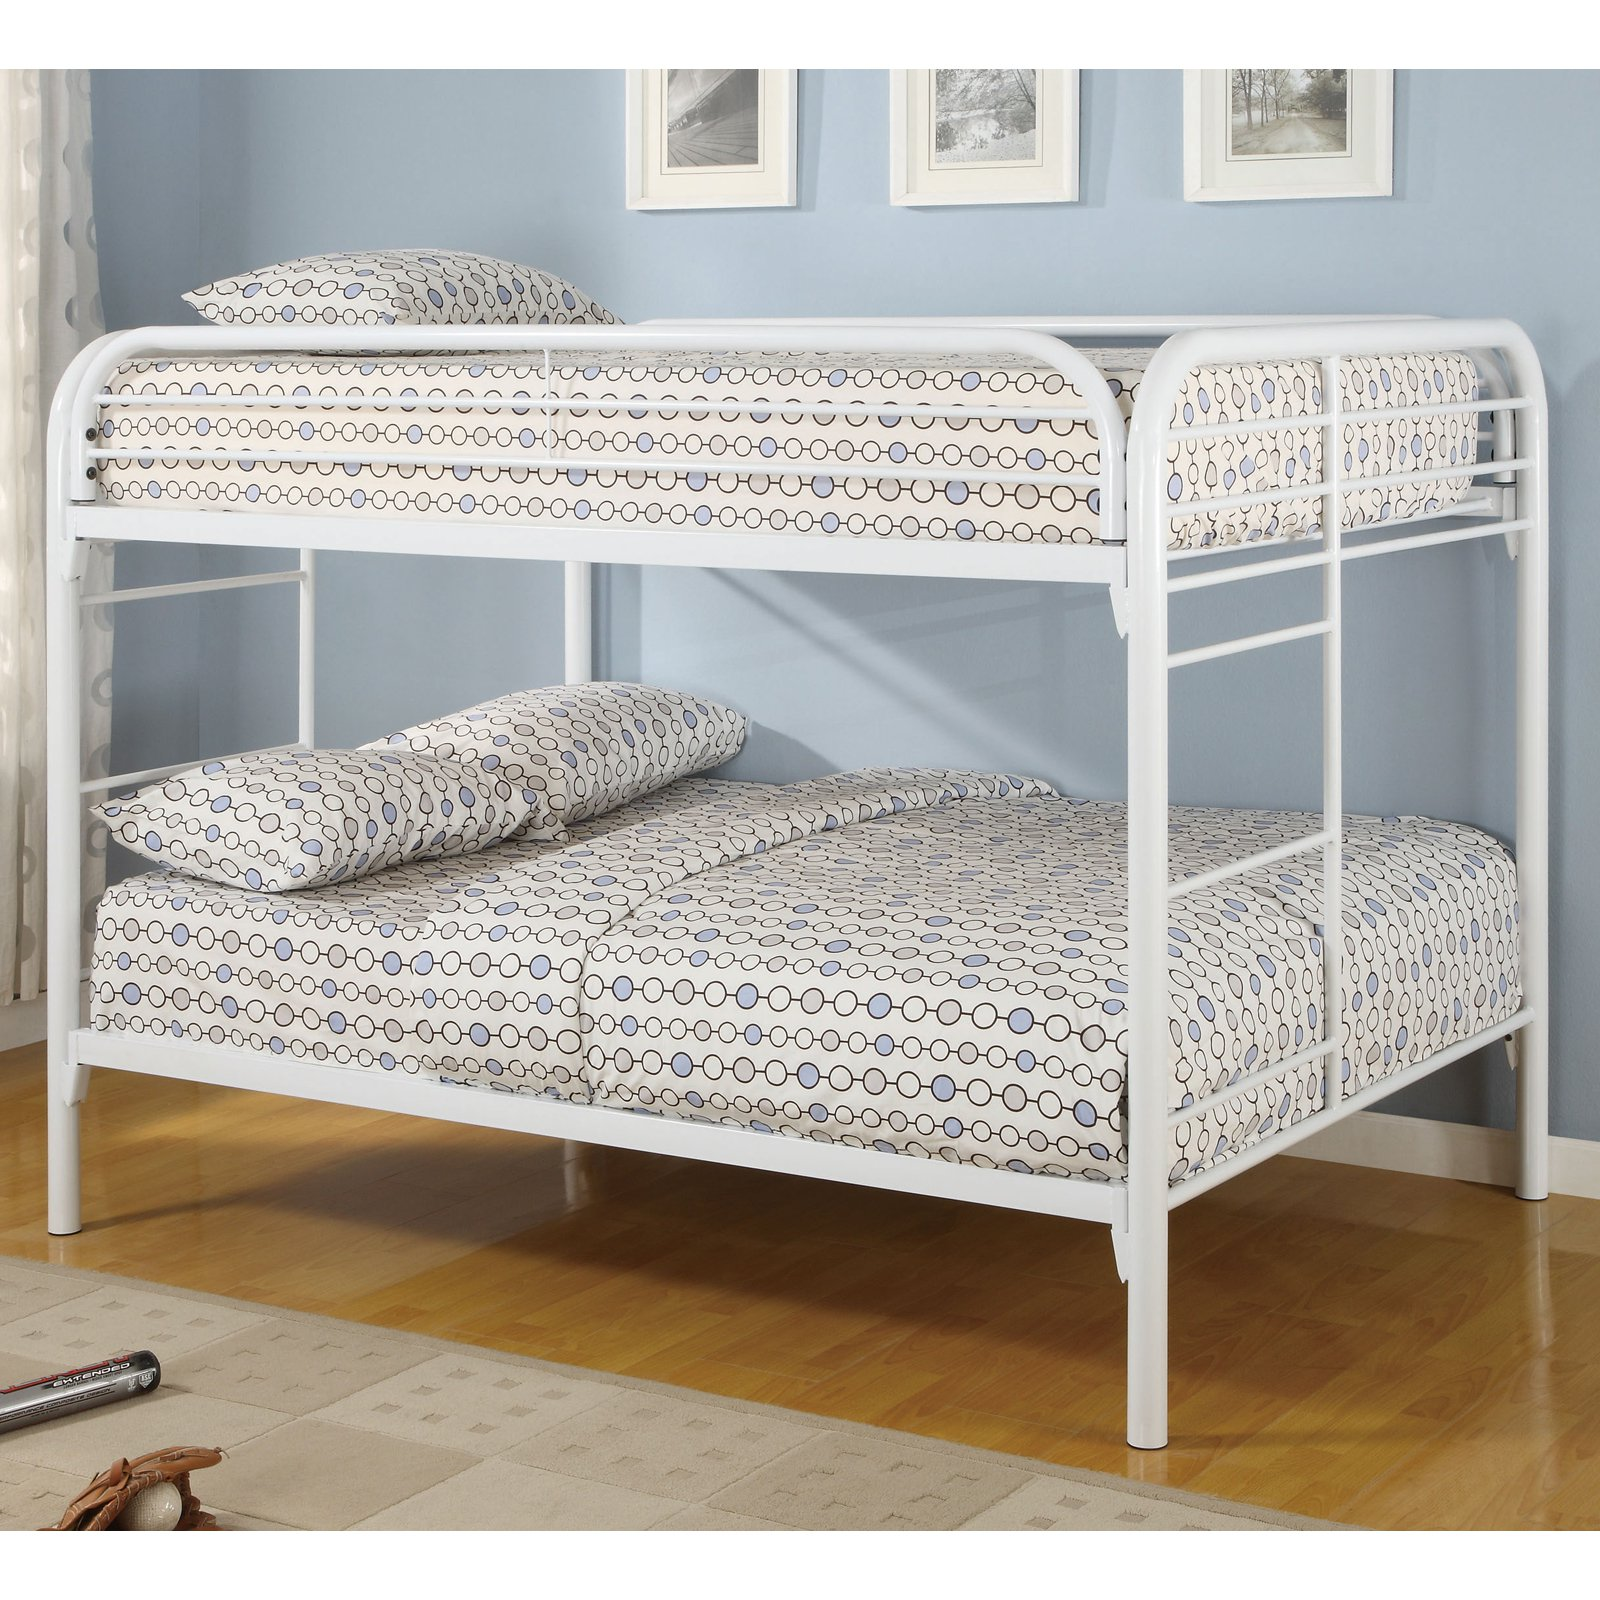 Coaster Full Over Full Metal Bunk Bed, White by Coaster Company